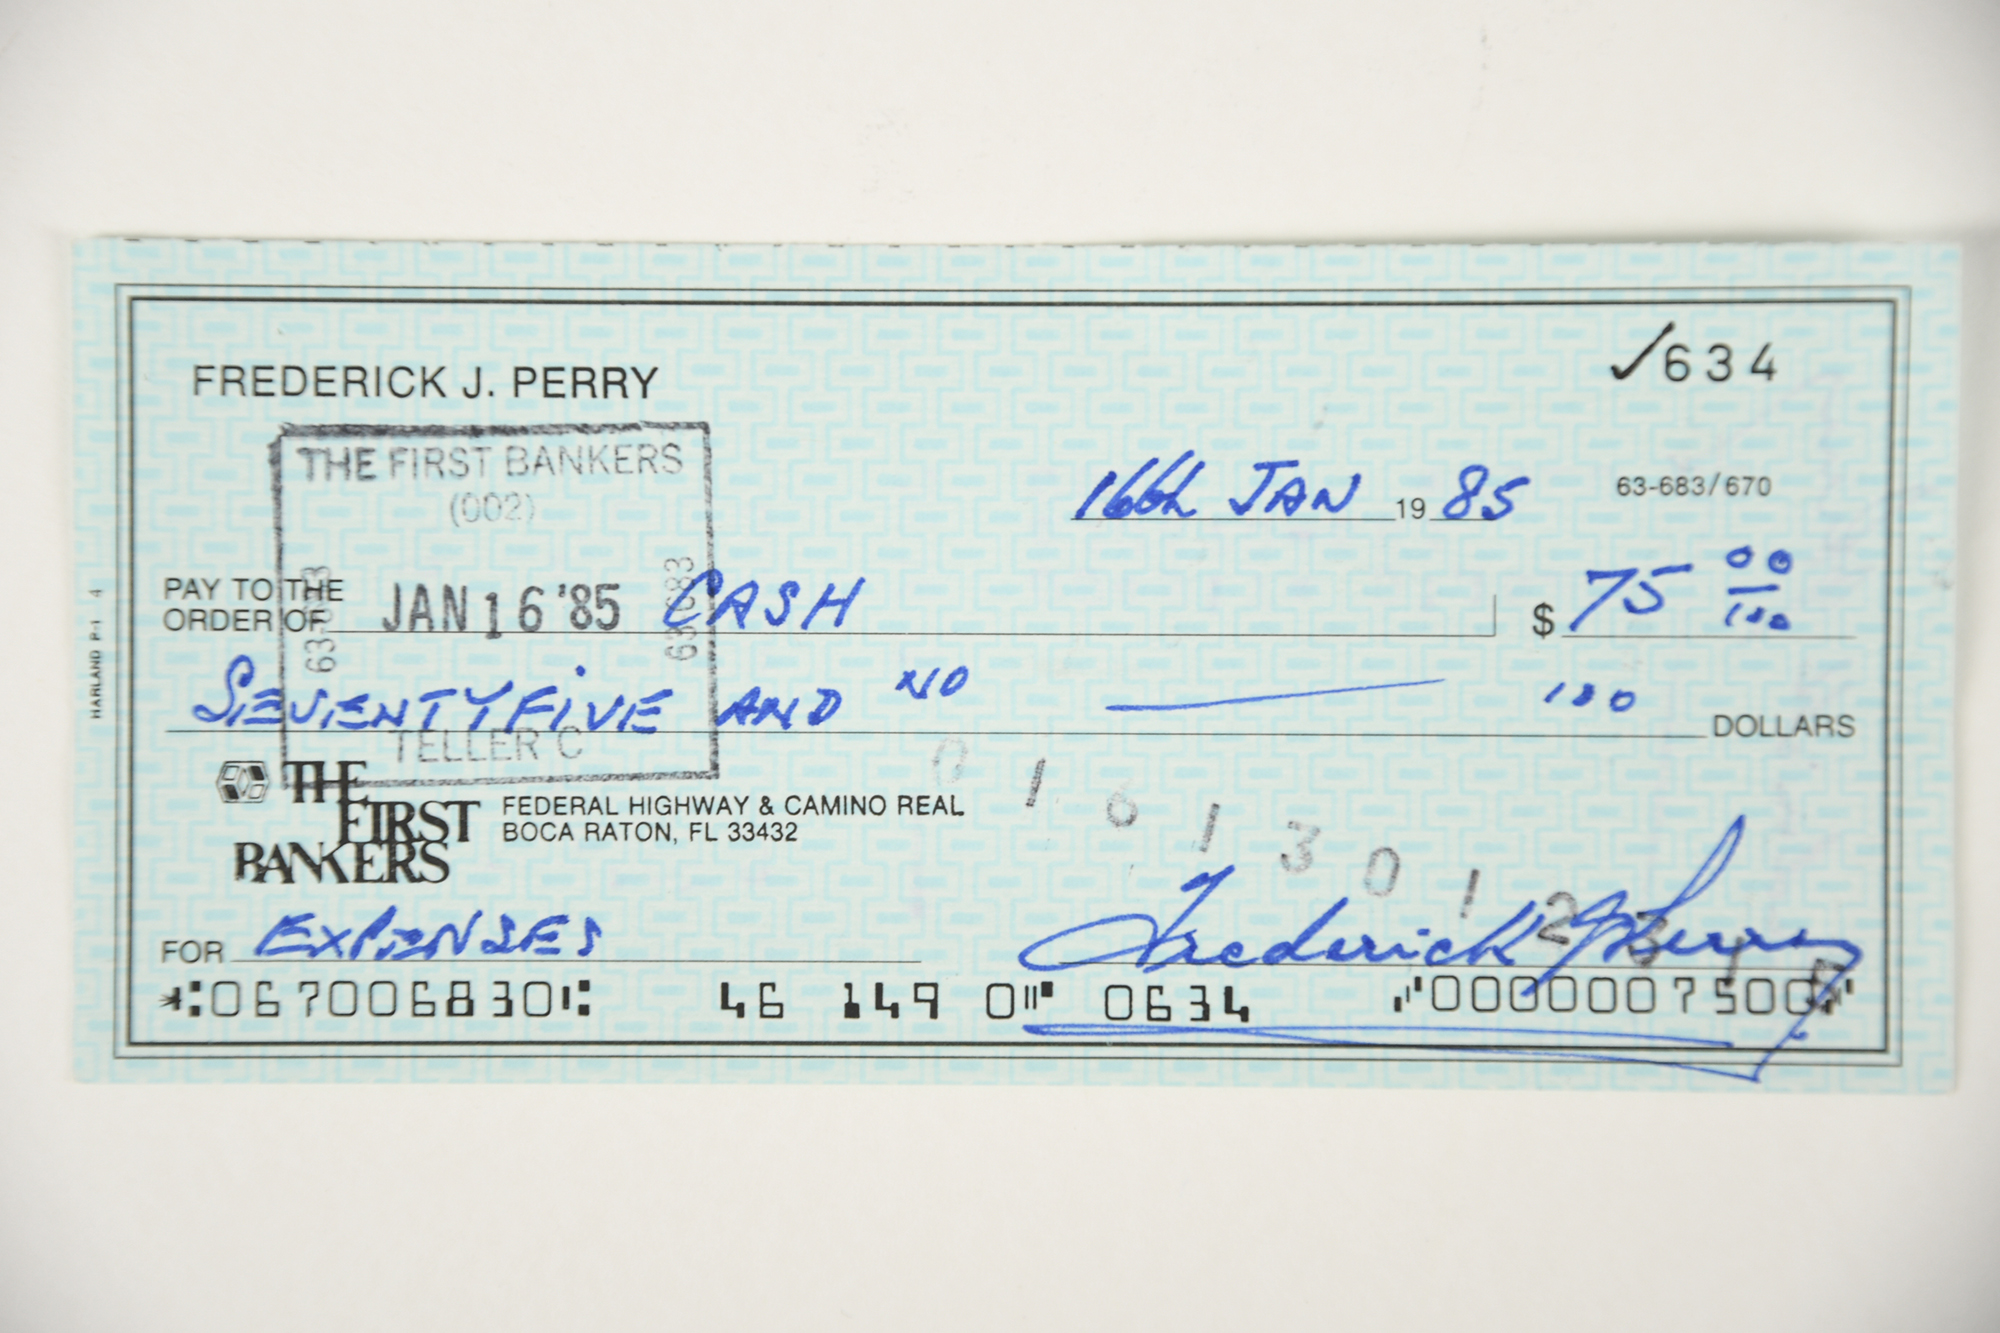 FRED PERRY Original signature on cheque.